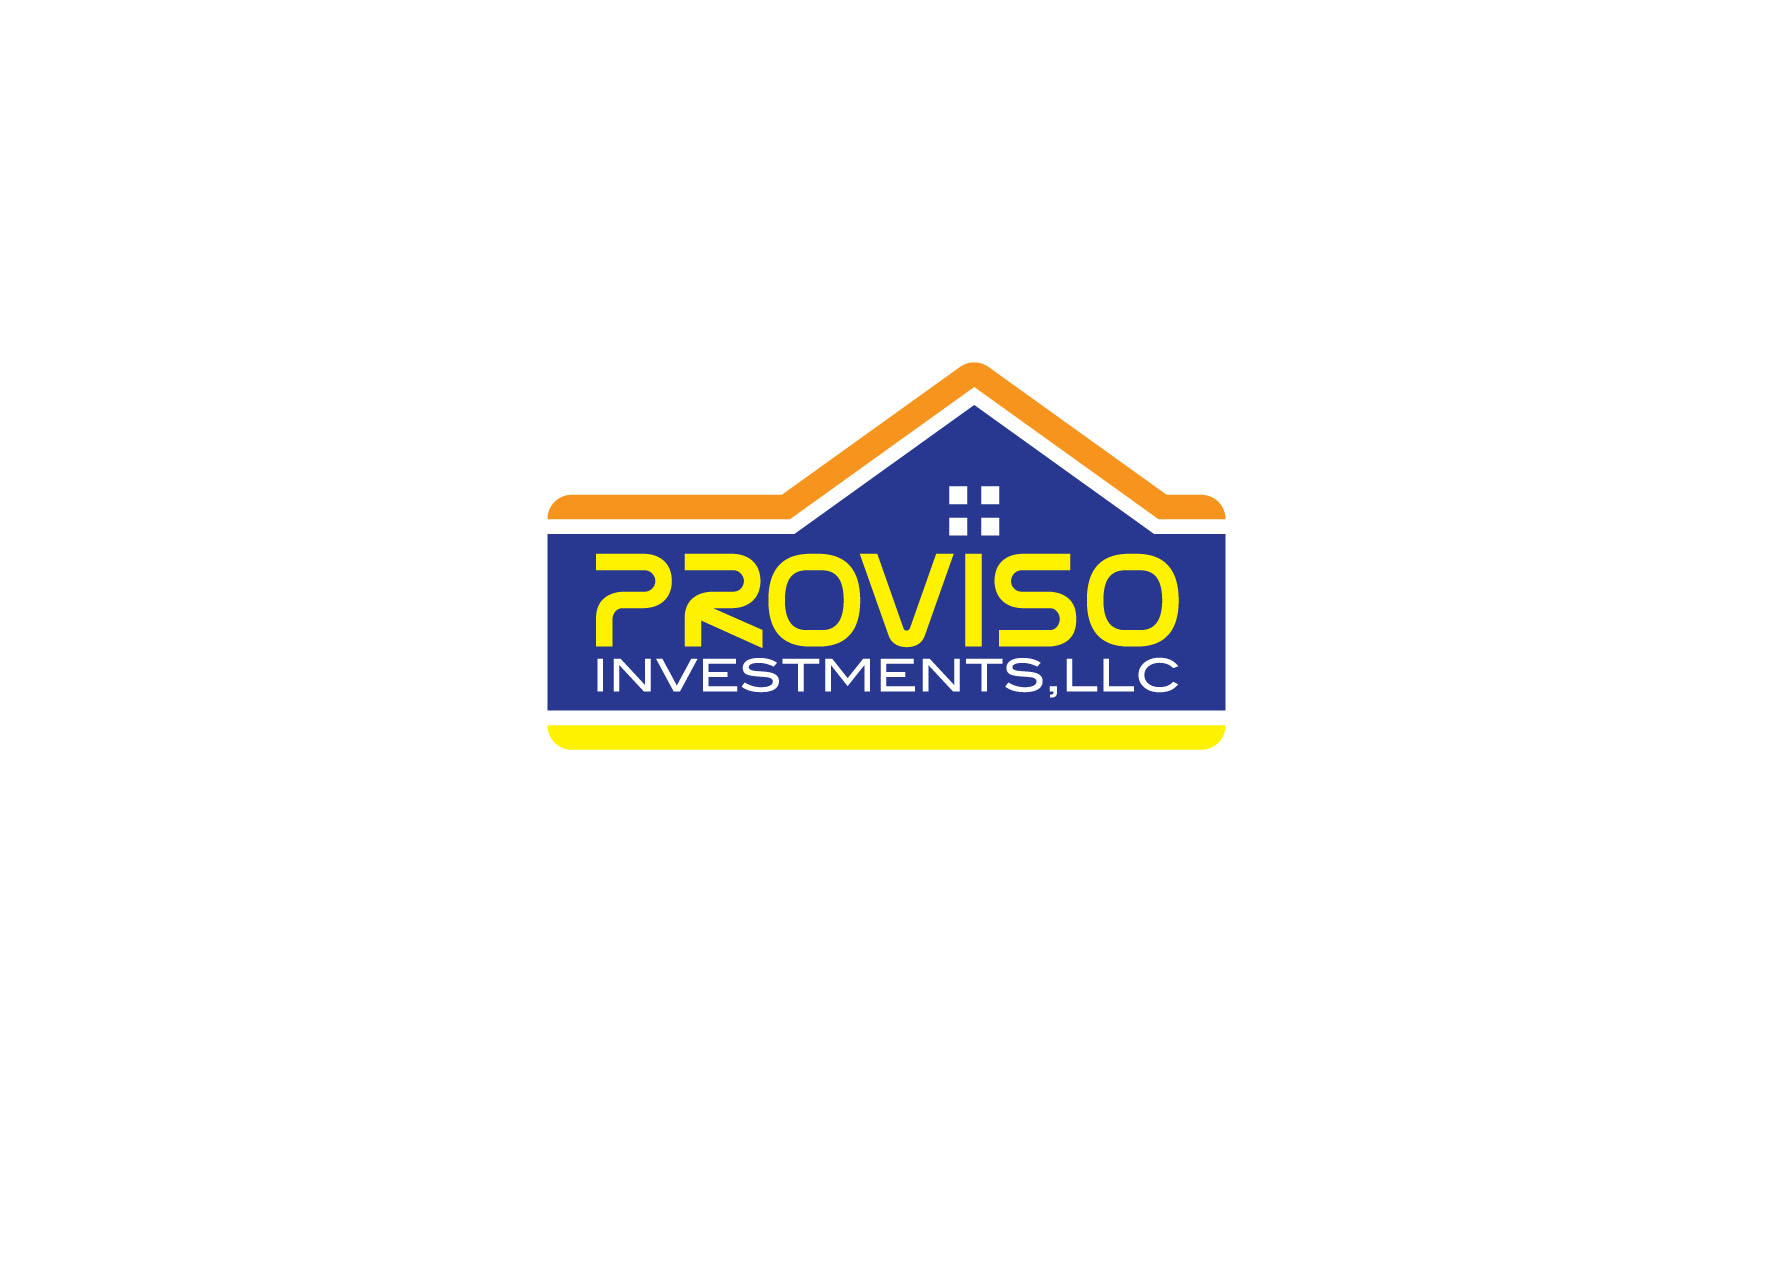 Logo Design by tanganpanas - Entry No. 22 in the Logo Design Contest New Logo Design for PROVISO INVESTMENTS,LLC.